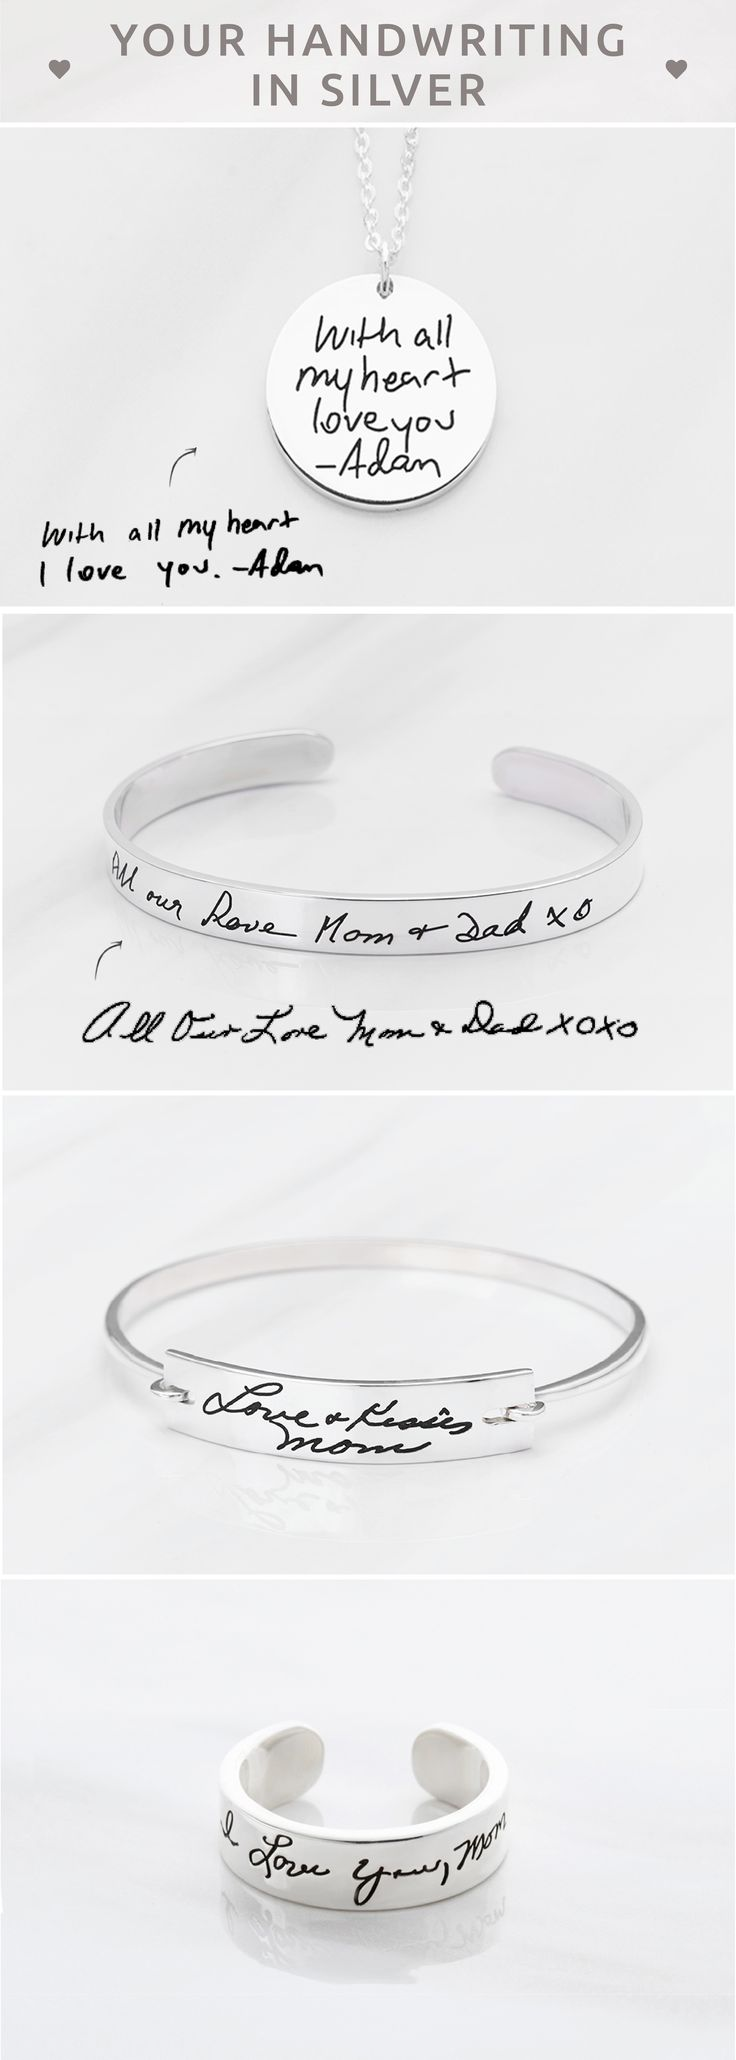 Handwritten jewelry • Engraved Handwriting Cuff • Cut-out Handwriting Bangle • Bar Handwriting Keychain • Heart Tag Handwriting Necklace • Handwriting gift • Custom Handwriting Jewelry Sterling Silver • Personalized handwriting jewelry • Memorial bracelet • Condolence Jewelry in Sterling Silver • Memorial jewelry for wedding • Memorial Gift • christmas gifts for gf • personalised engagement gifts for engaged couple • best birthday gifts for friends • christmas gift ideas for friends • good…